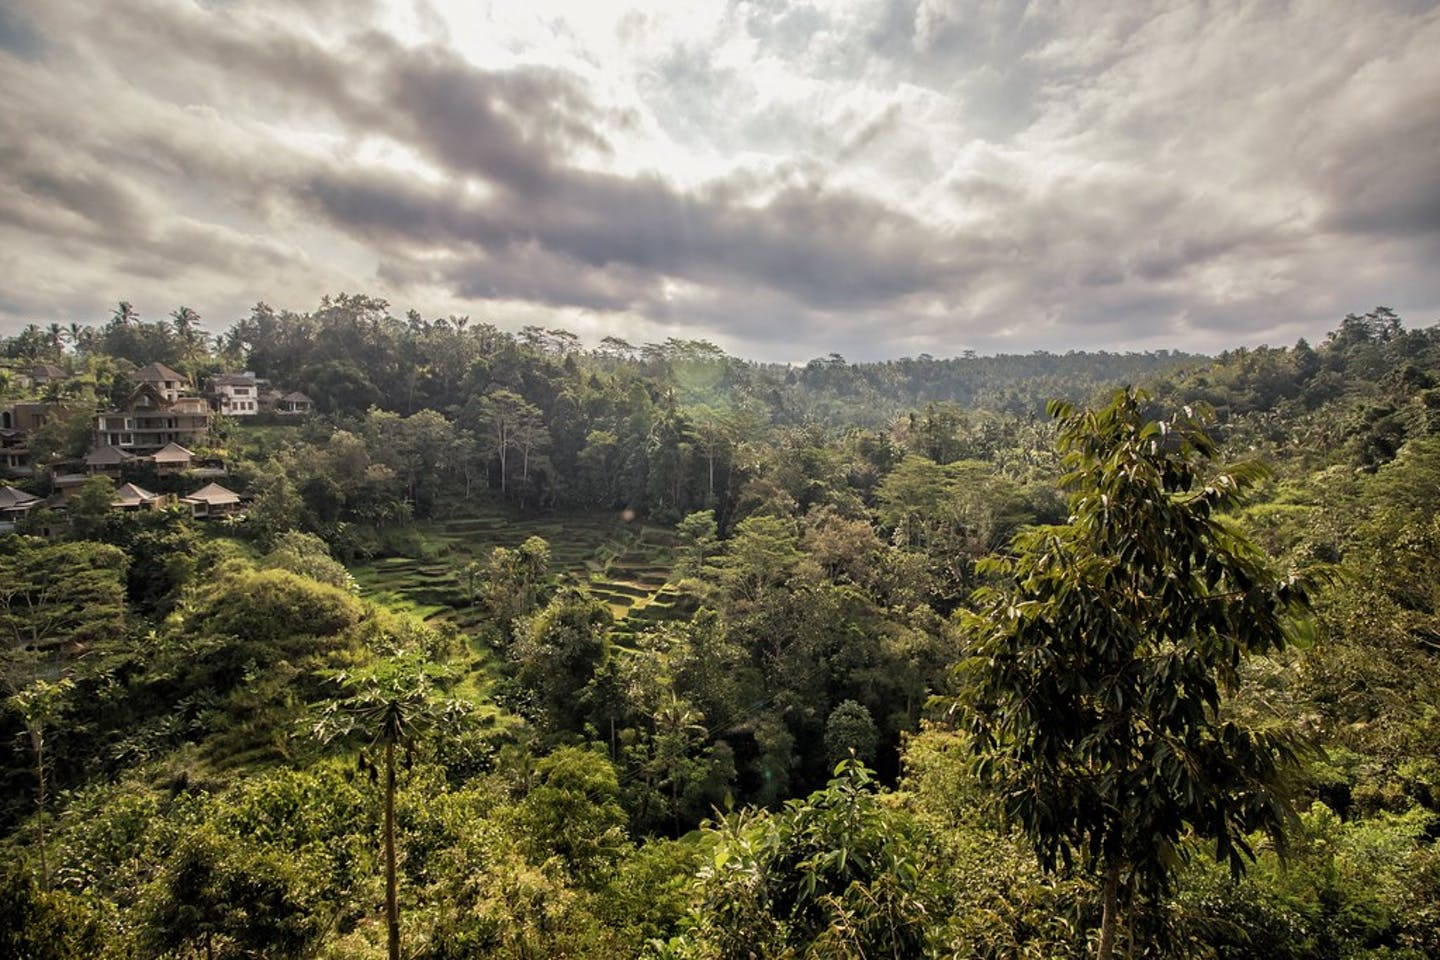 bali indonesia forest